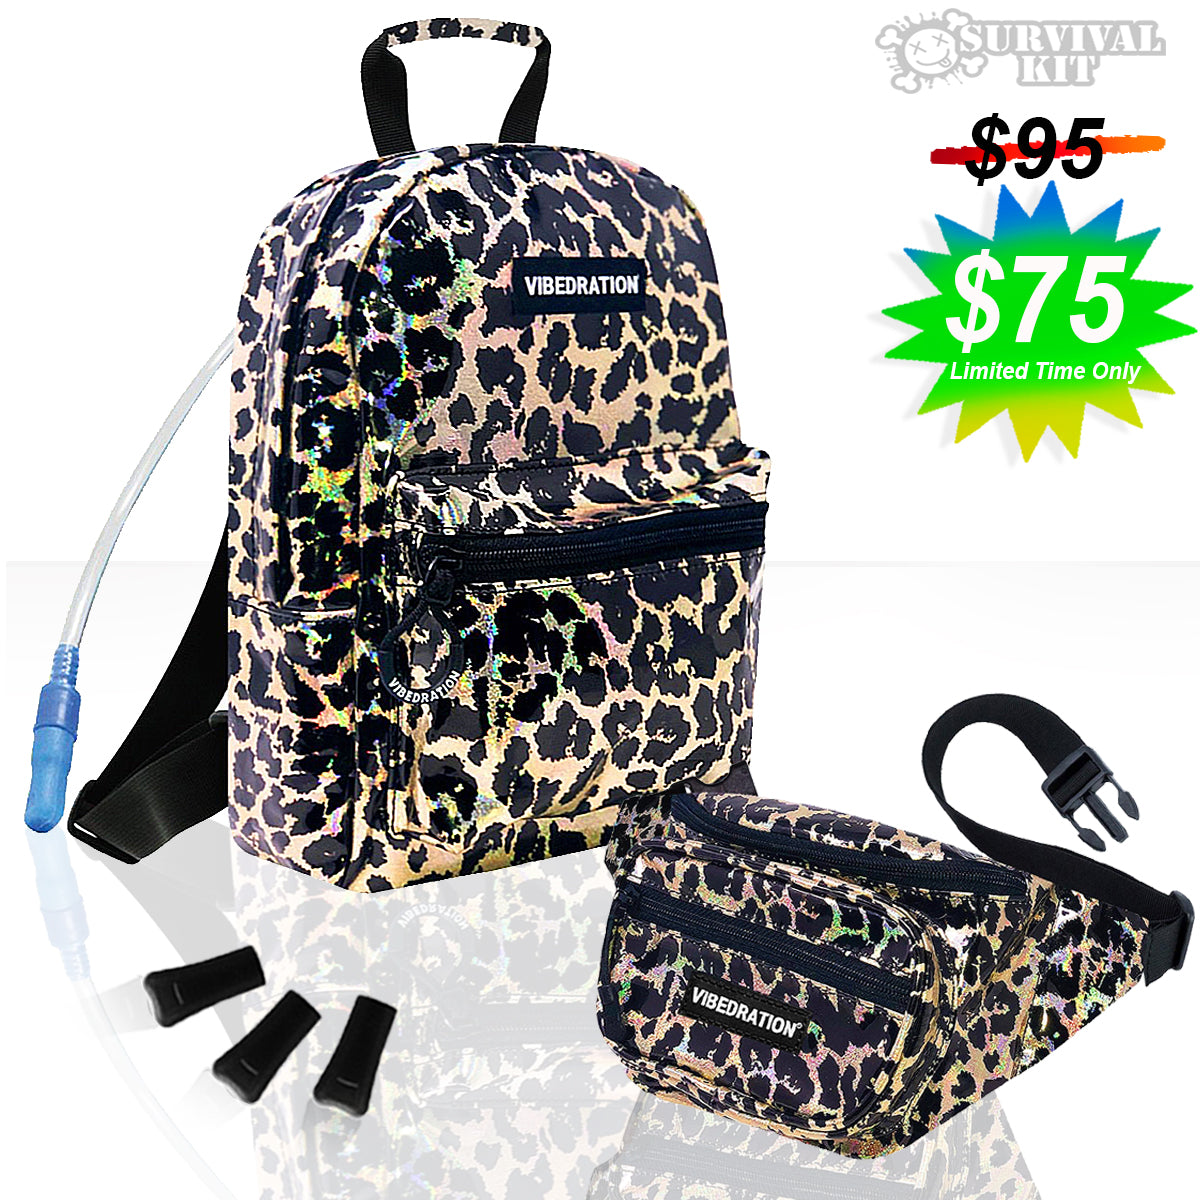 Wild Life Mini Backpack hydration bag fanny pack combo set